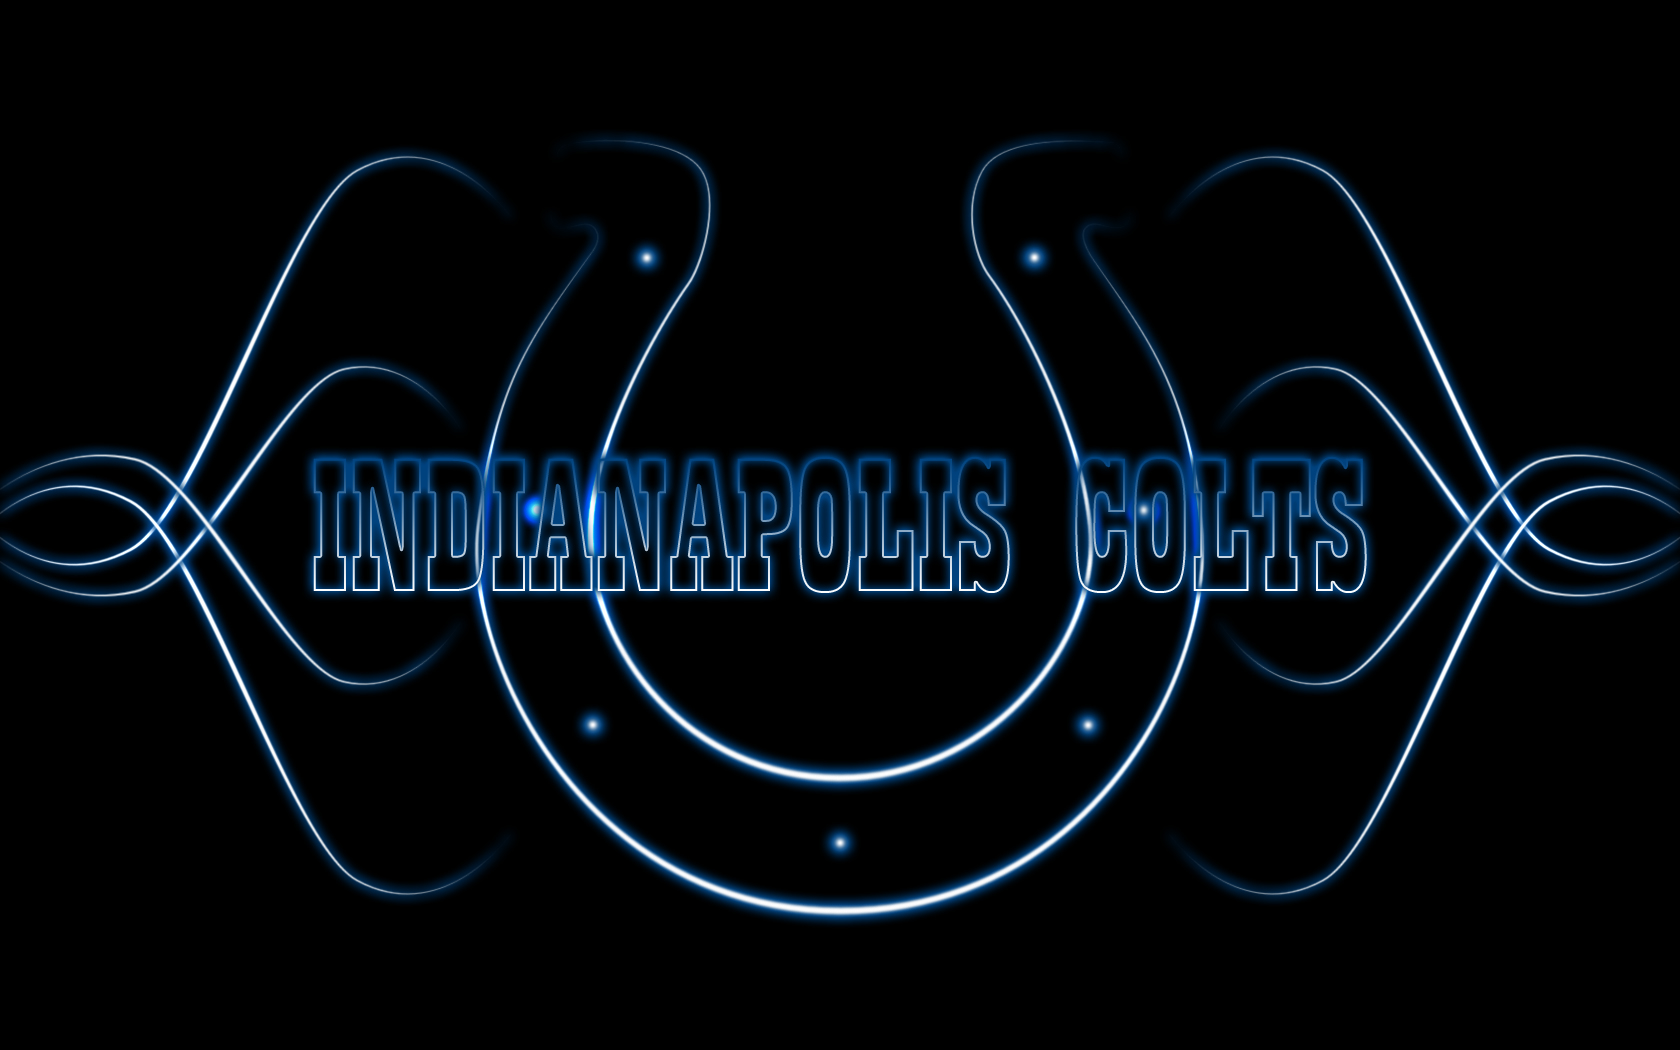 Colts Ethereal By Monkeybiziu 1680x1050